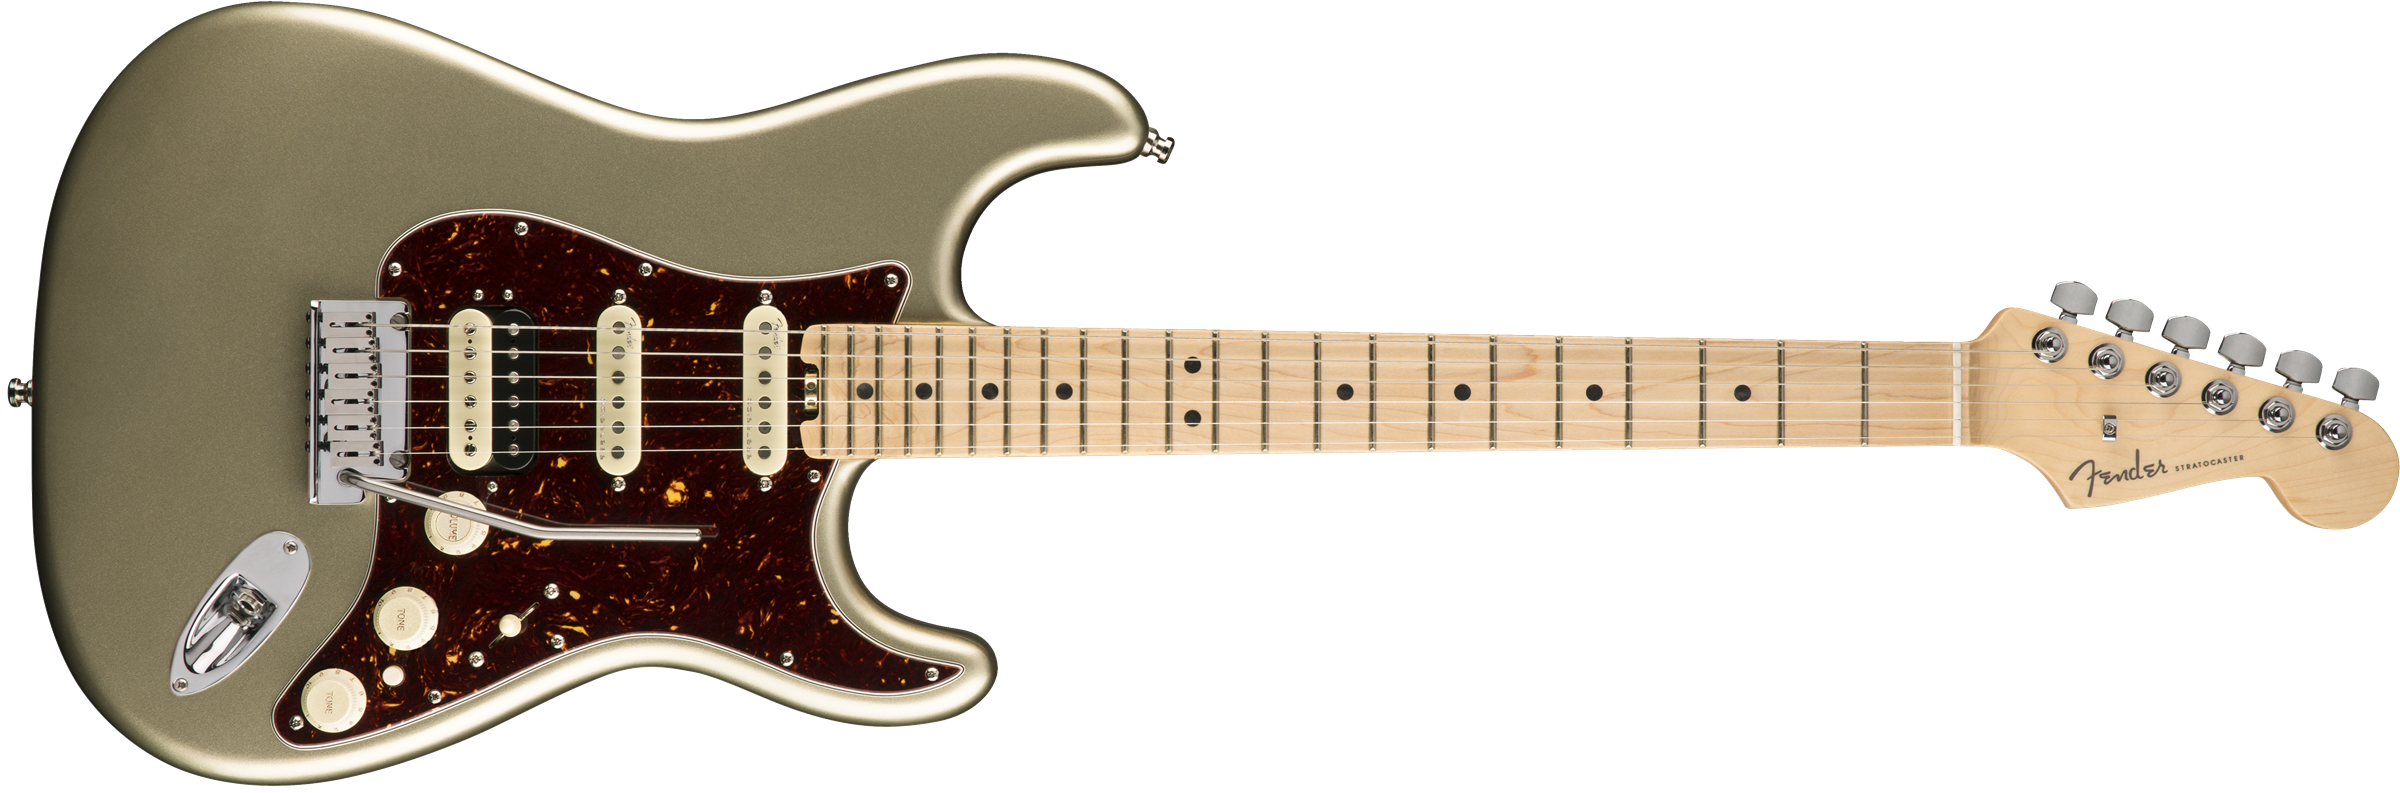 FENDER AM AMERICAN ELITE STRATO HSS SHAWBUCKER MN CHAMP - 0114112774